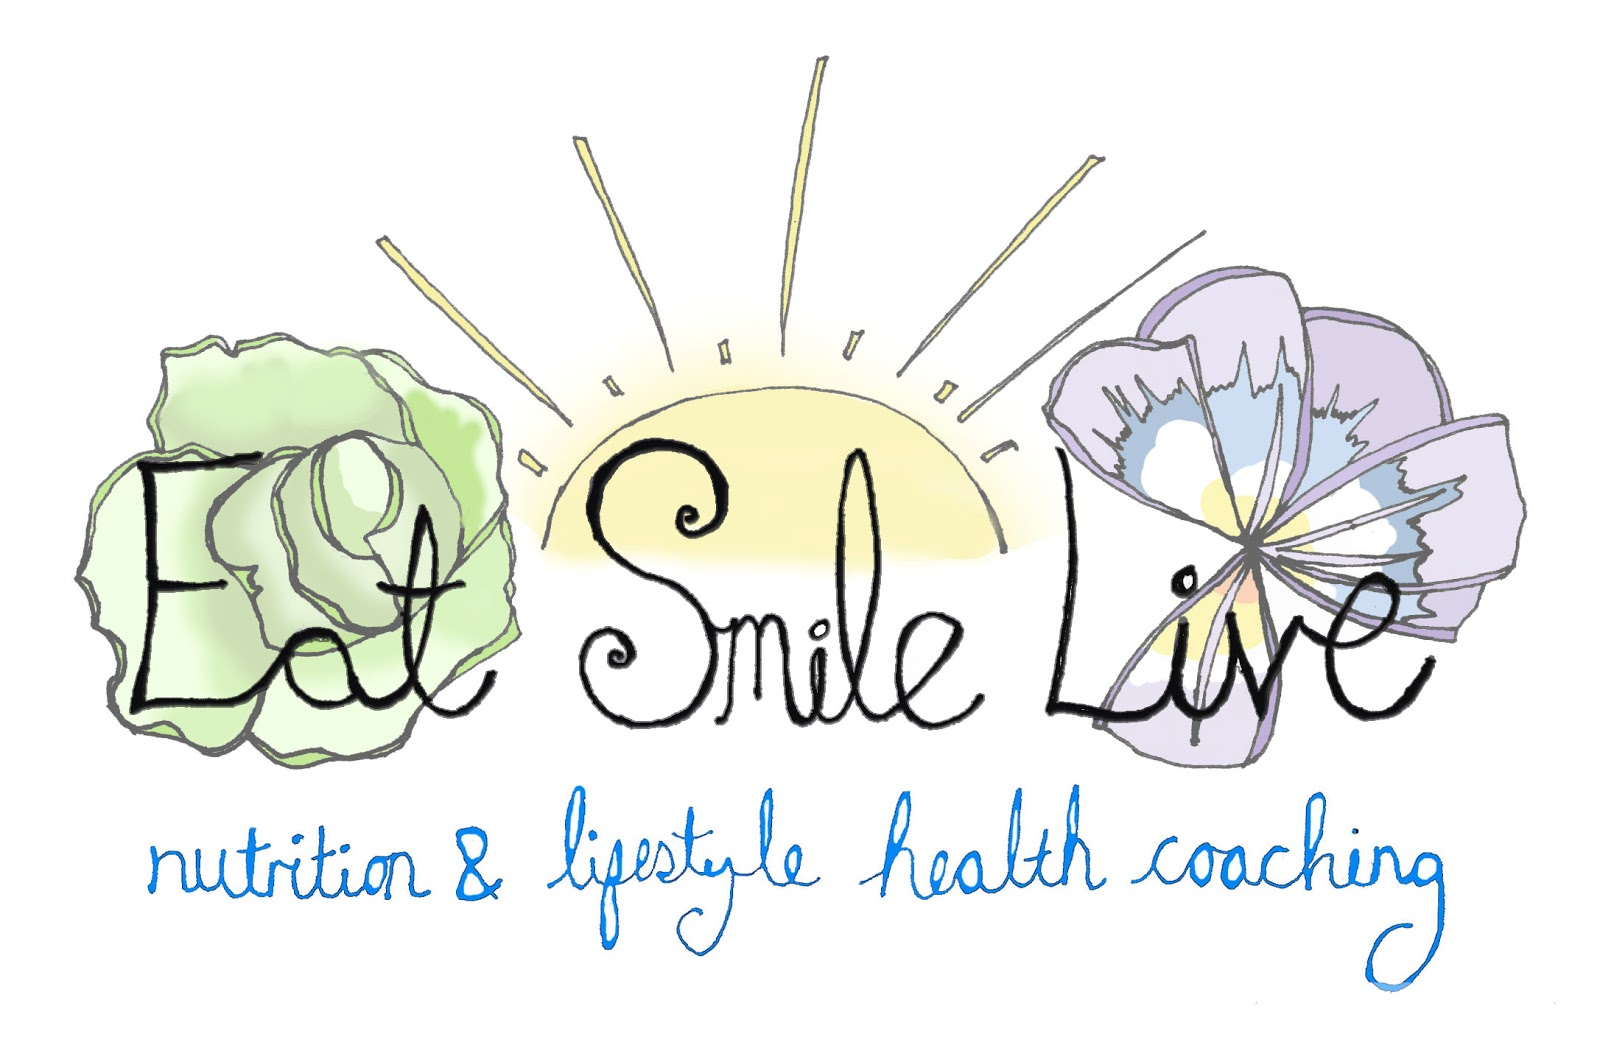 Eat smile live nutrition and lifestyle coaching with rochelle foster